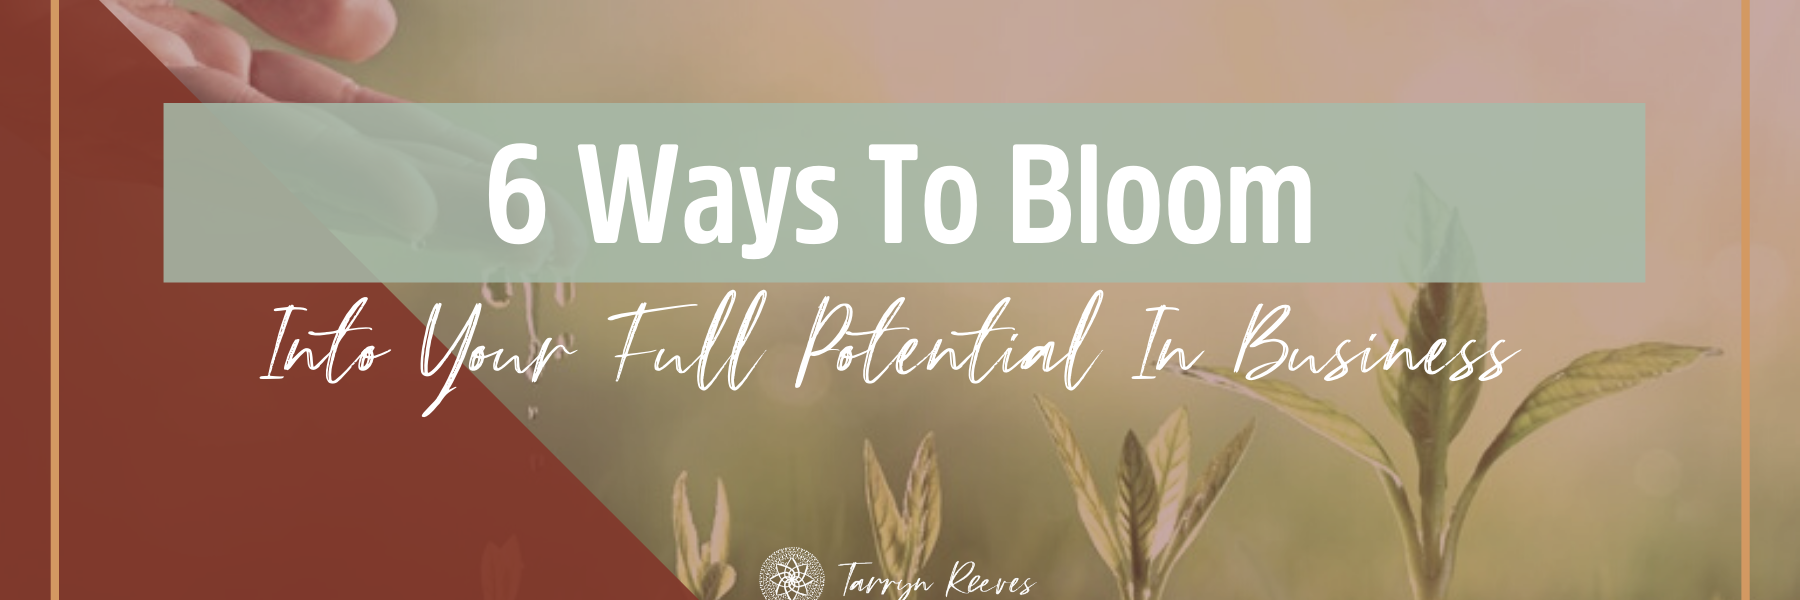 6 Ways To Bloom Into Your Full Potential In Business